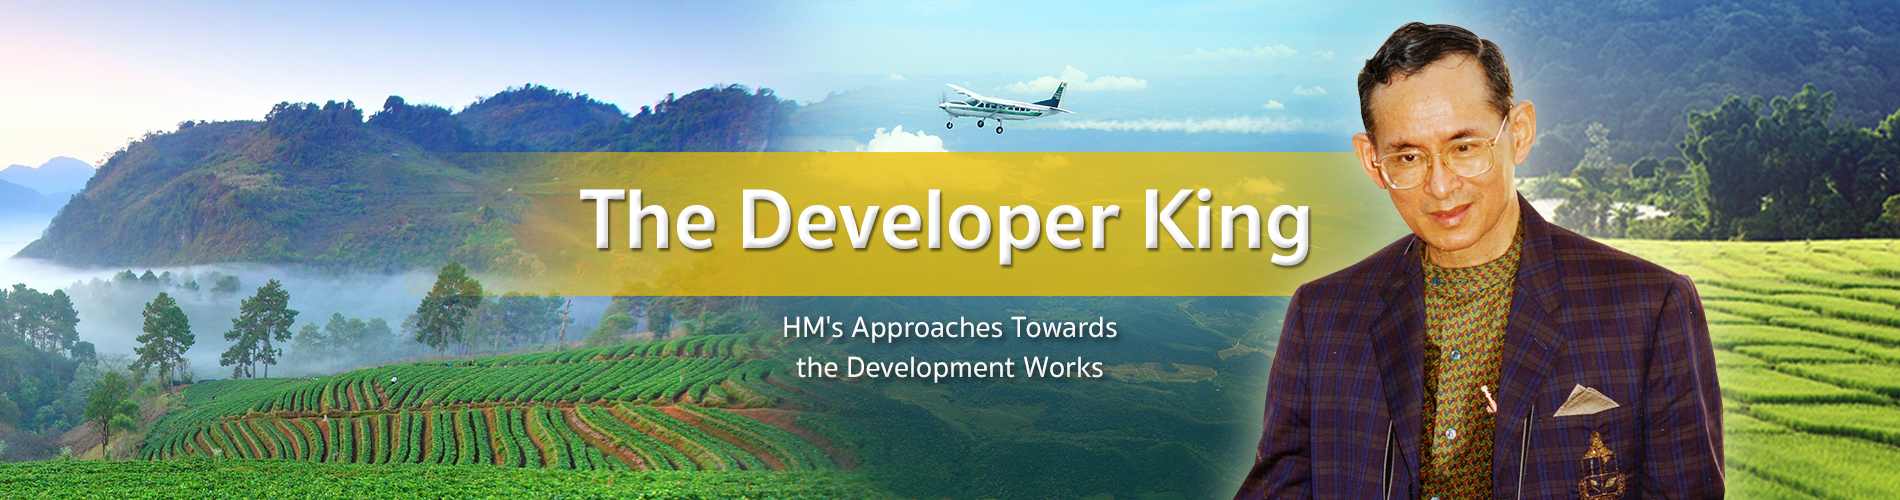 Principles of HM's Development Works